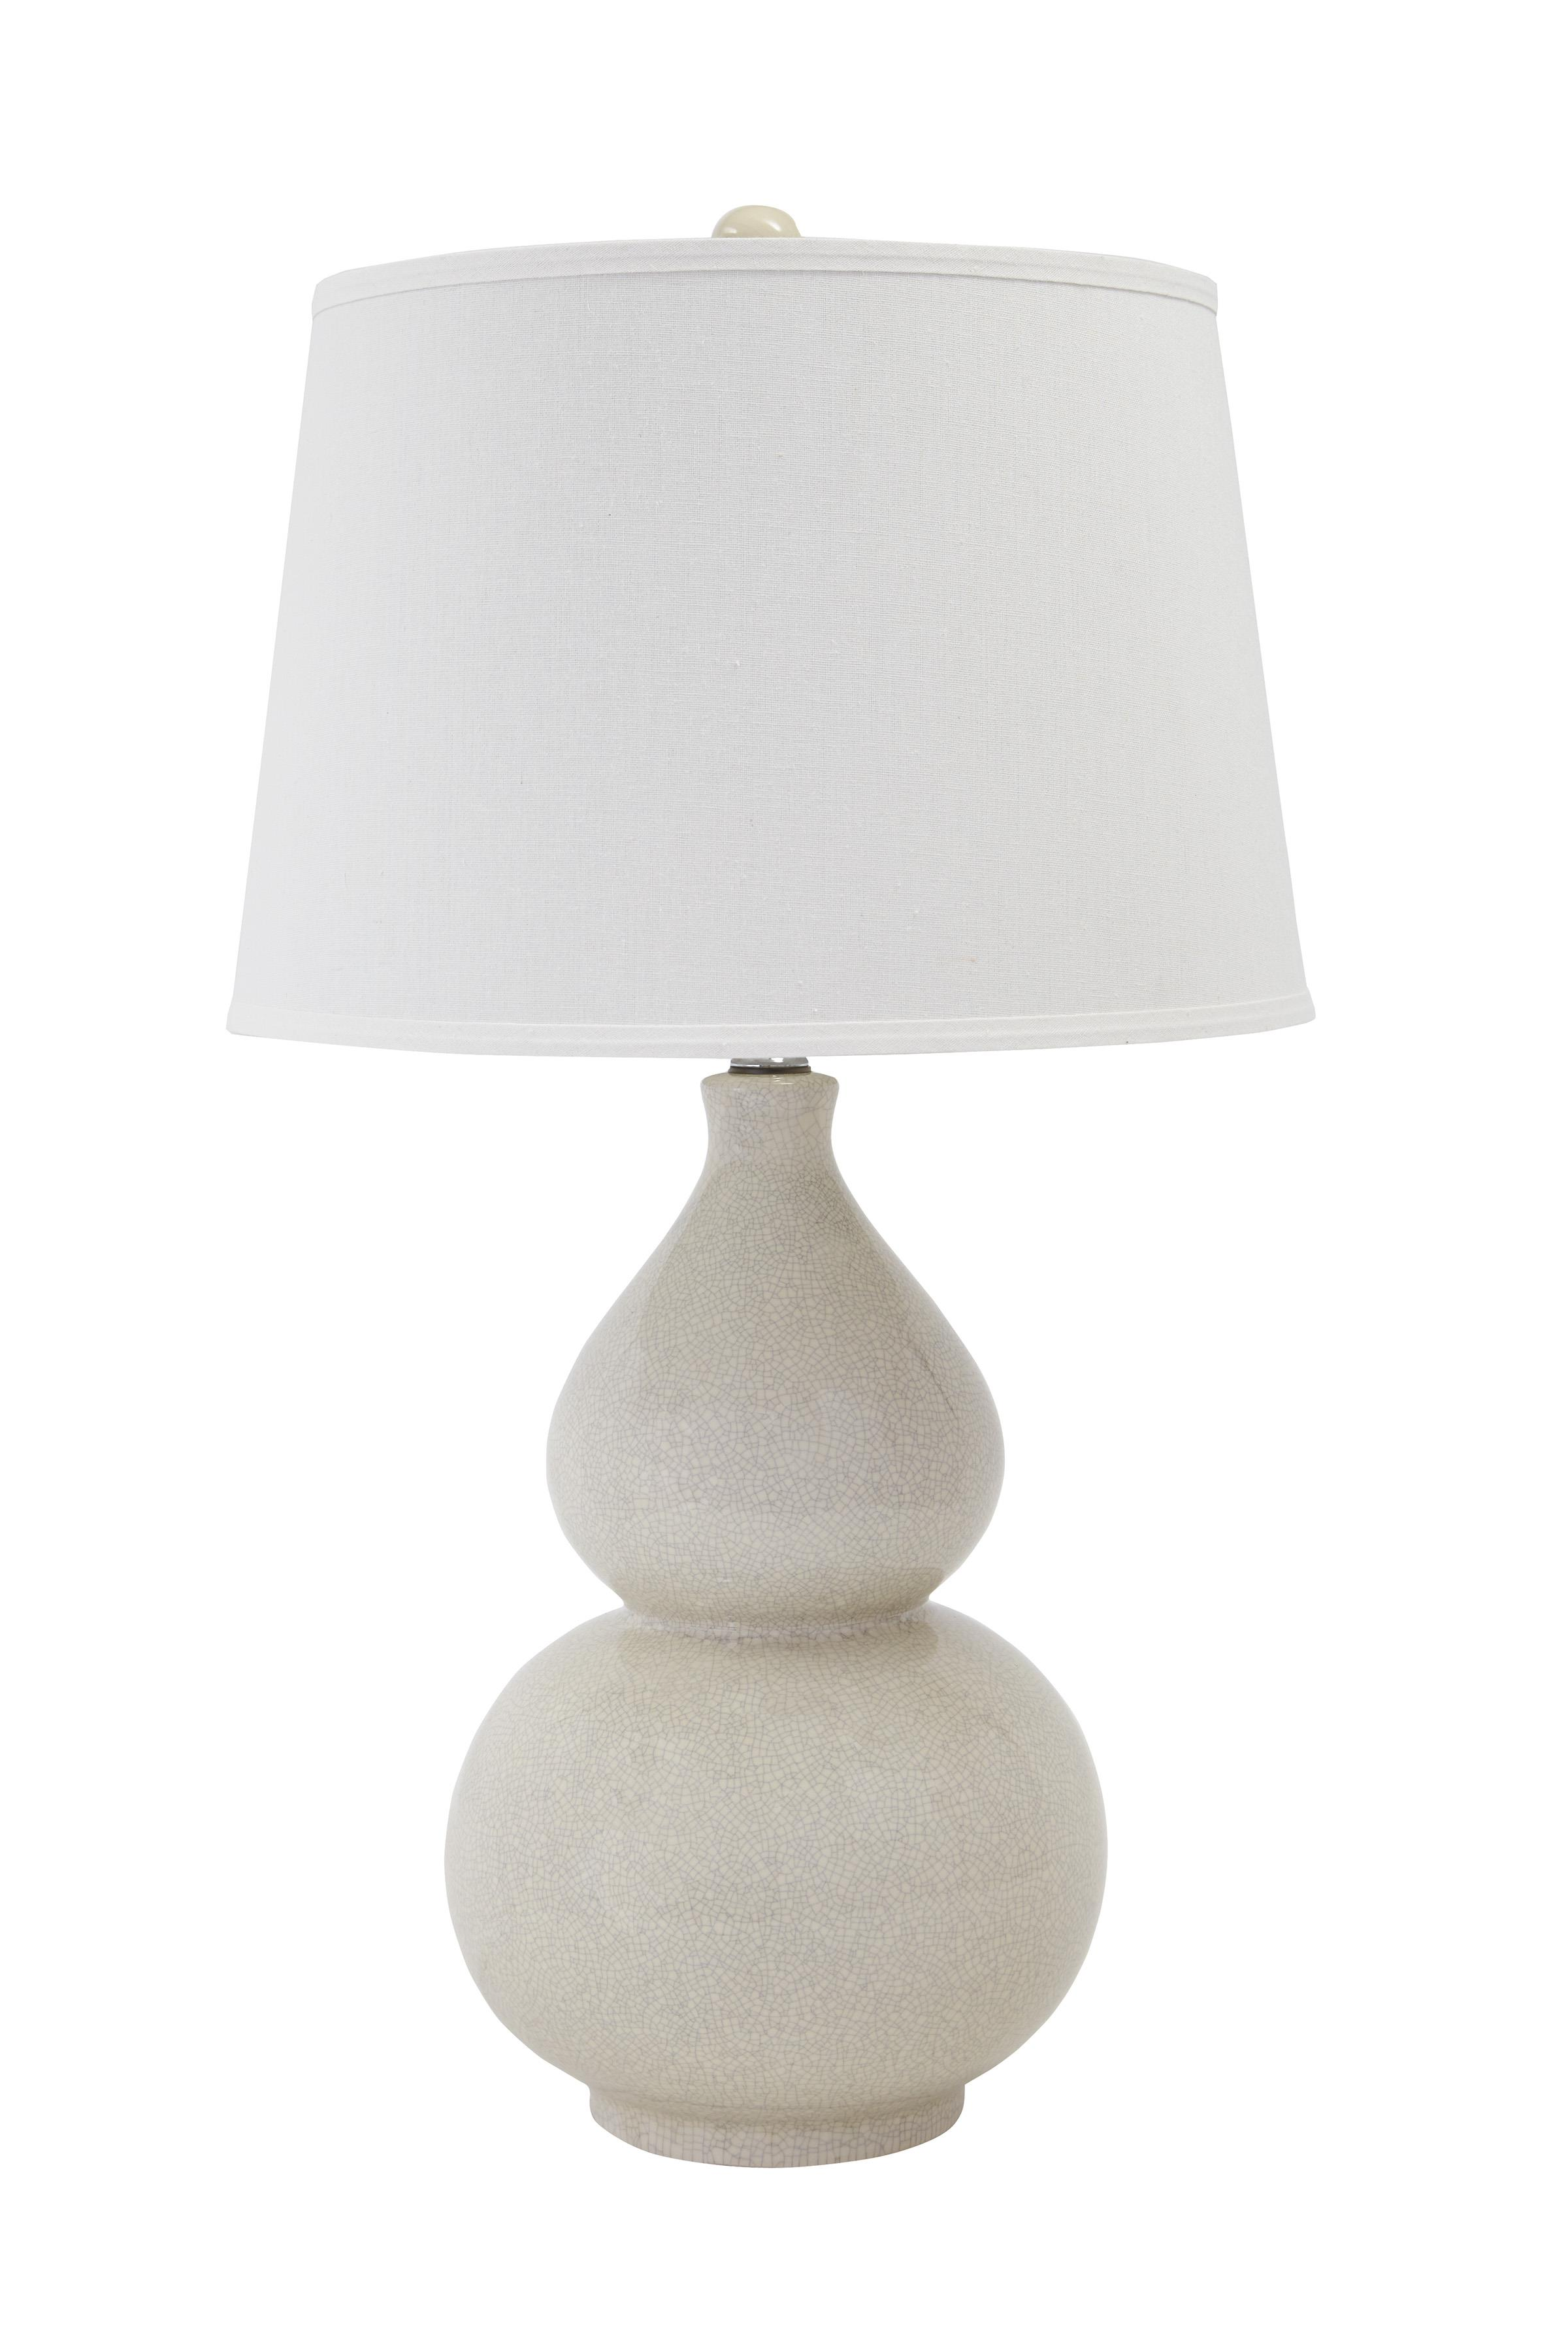 Lamps - Contemporary Ceramic Table Lamp  by Vendor 3 at Becker Furniture